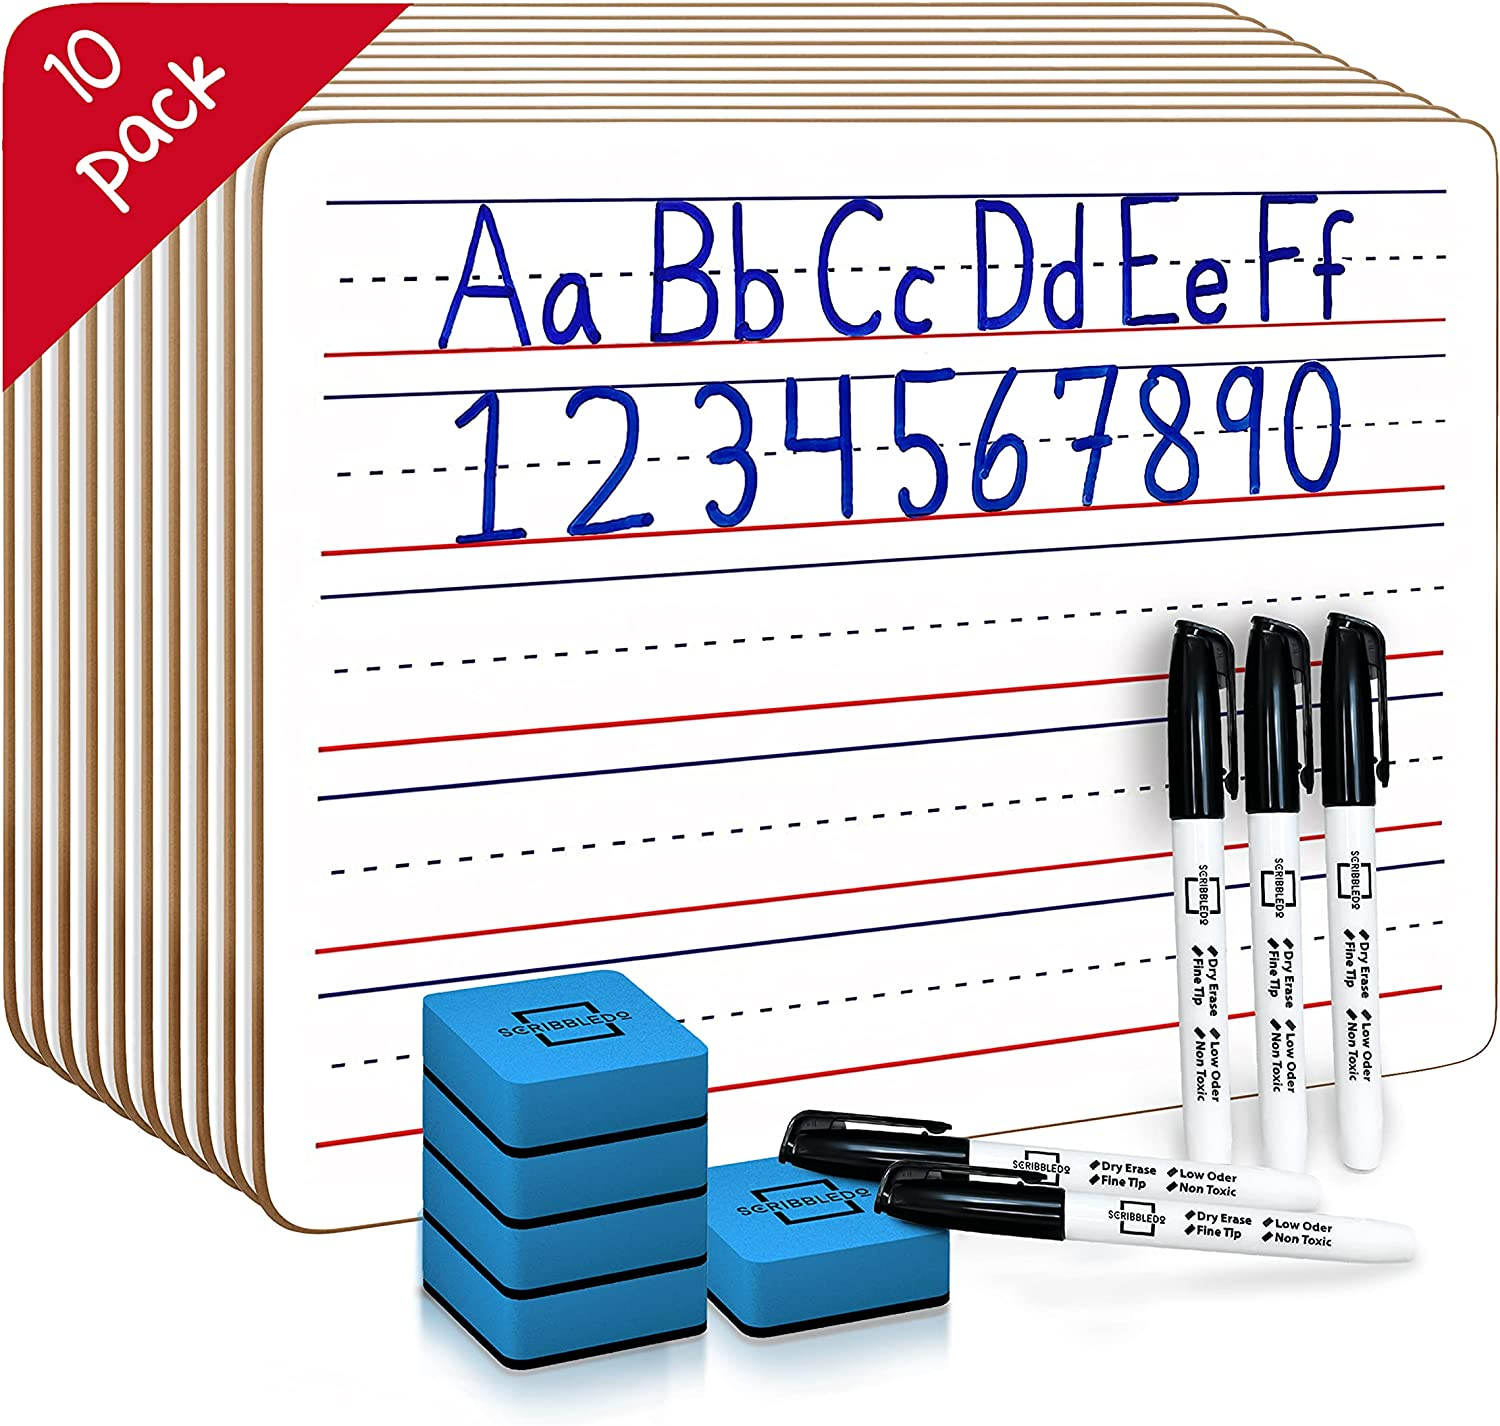 10 Pack 5 popular Now free shipping Dry Erase Ruled Whiteboards l Boa inch 9 X12 White Lined